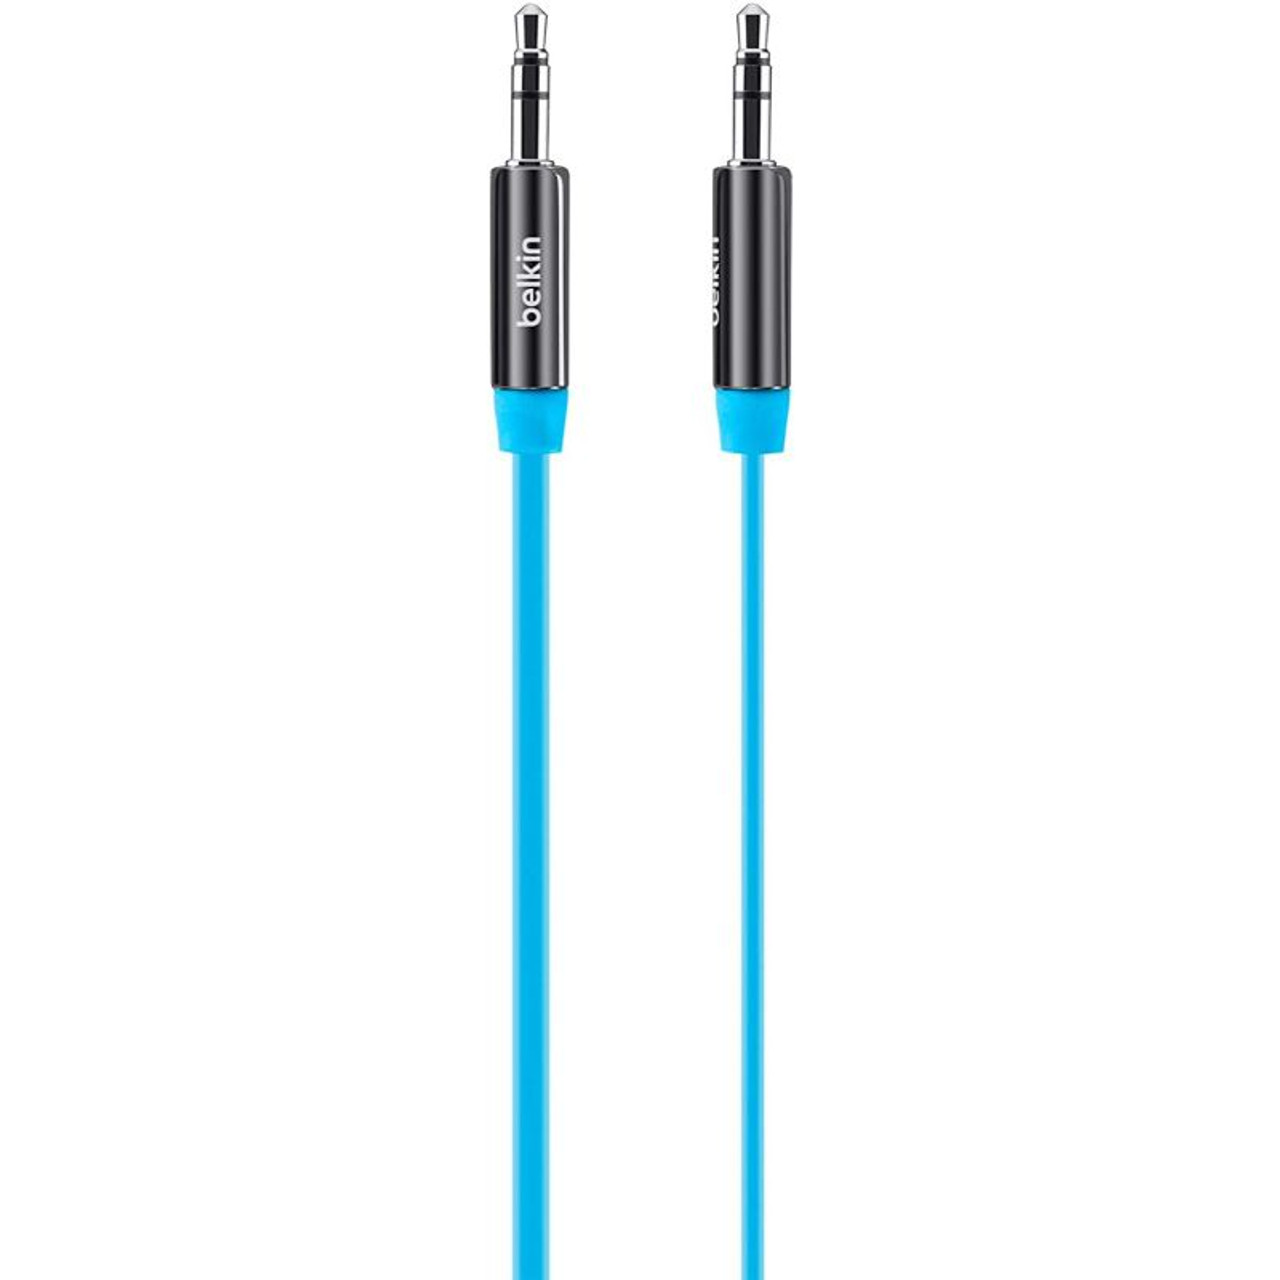 Belkin MiXiT Tangle-Free Aux, Auxiliary Cable, 3 Feet - Blue